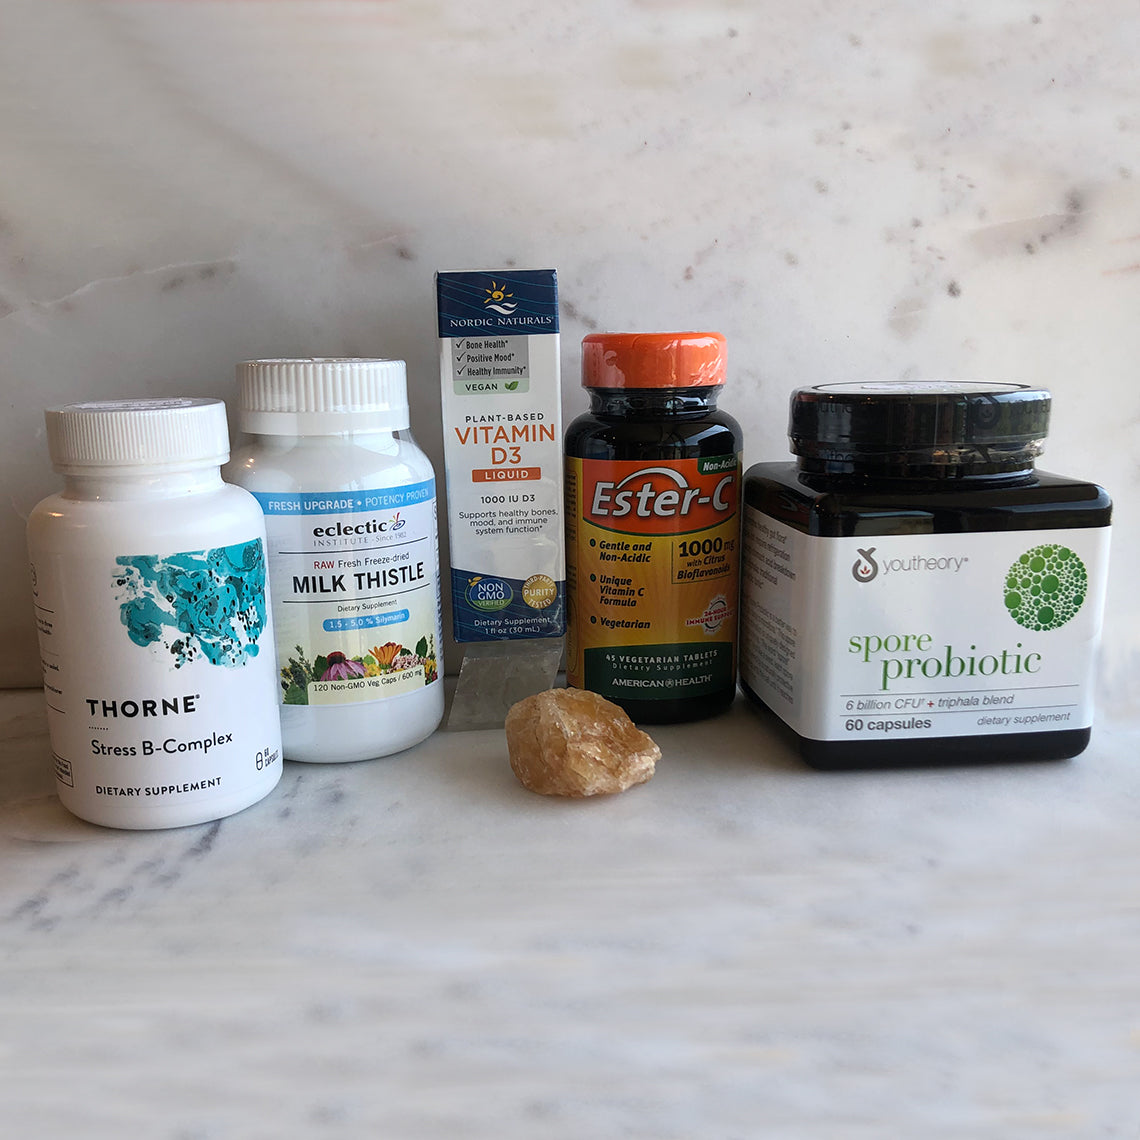 Detox Support Supplements for Jessica's Summer 5 Day Detox For Beginners